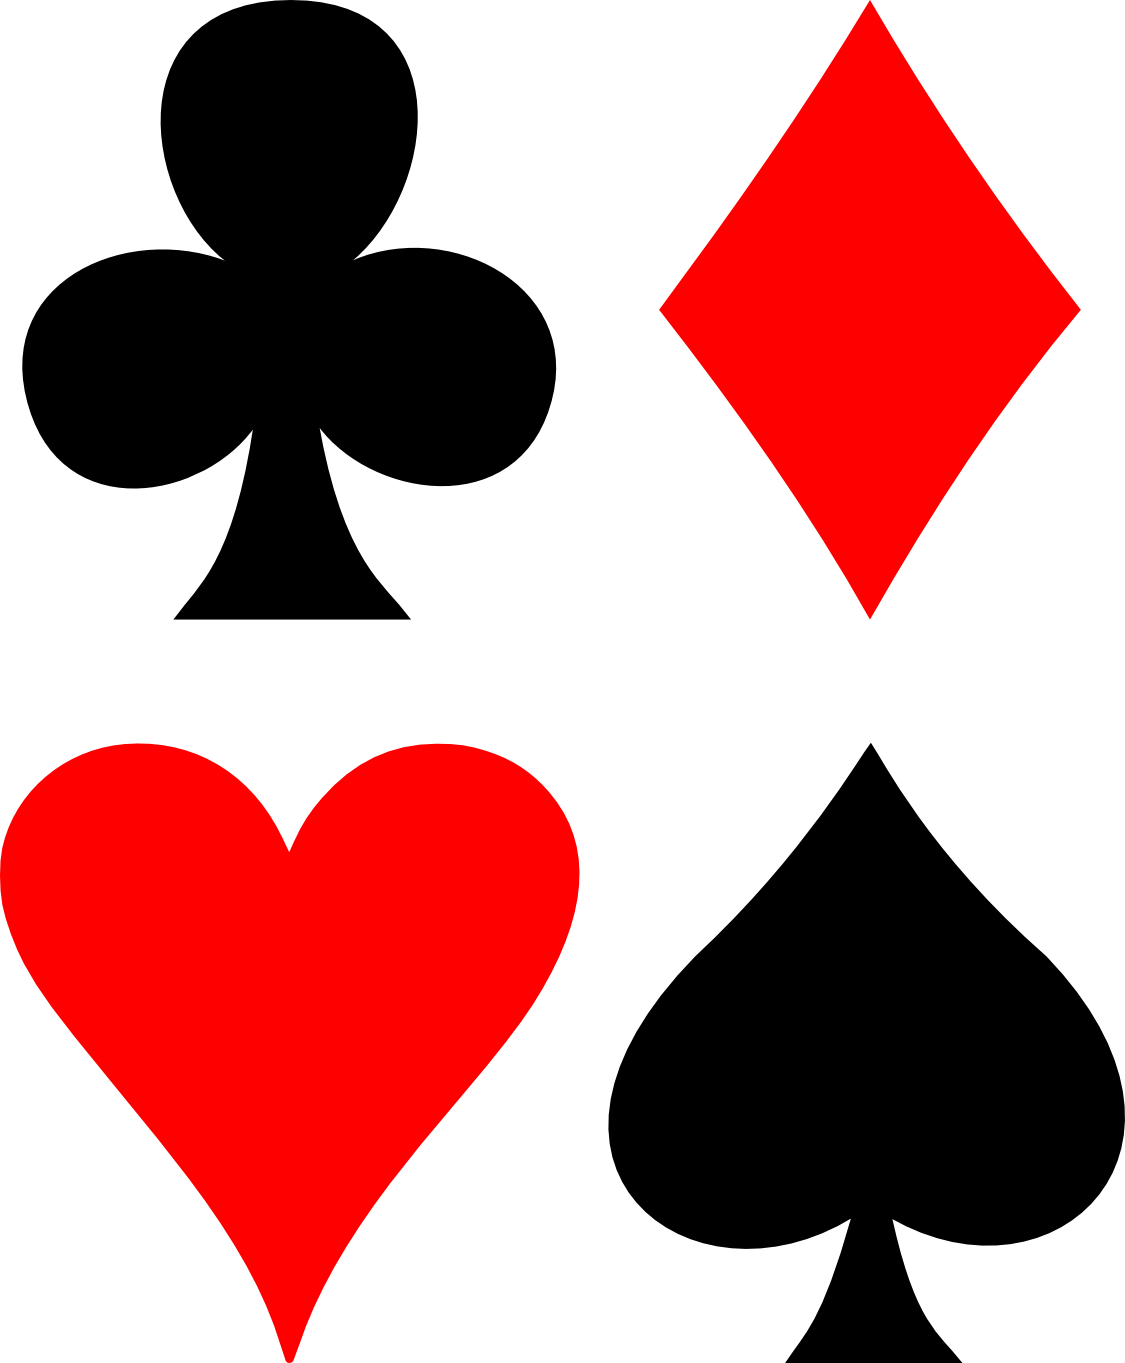 4 suits in a deck of cards